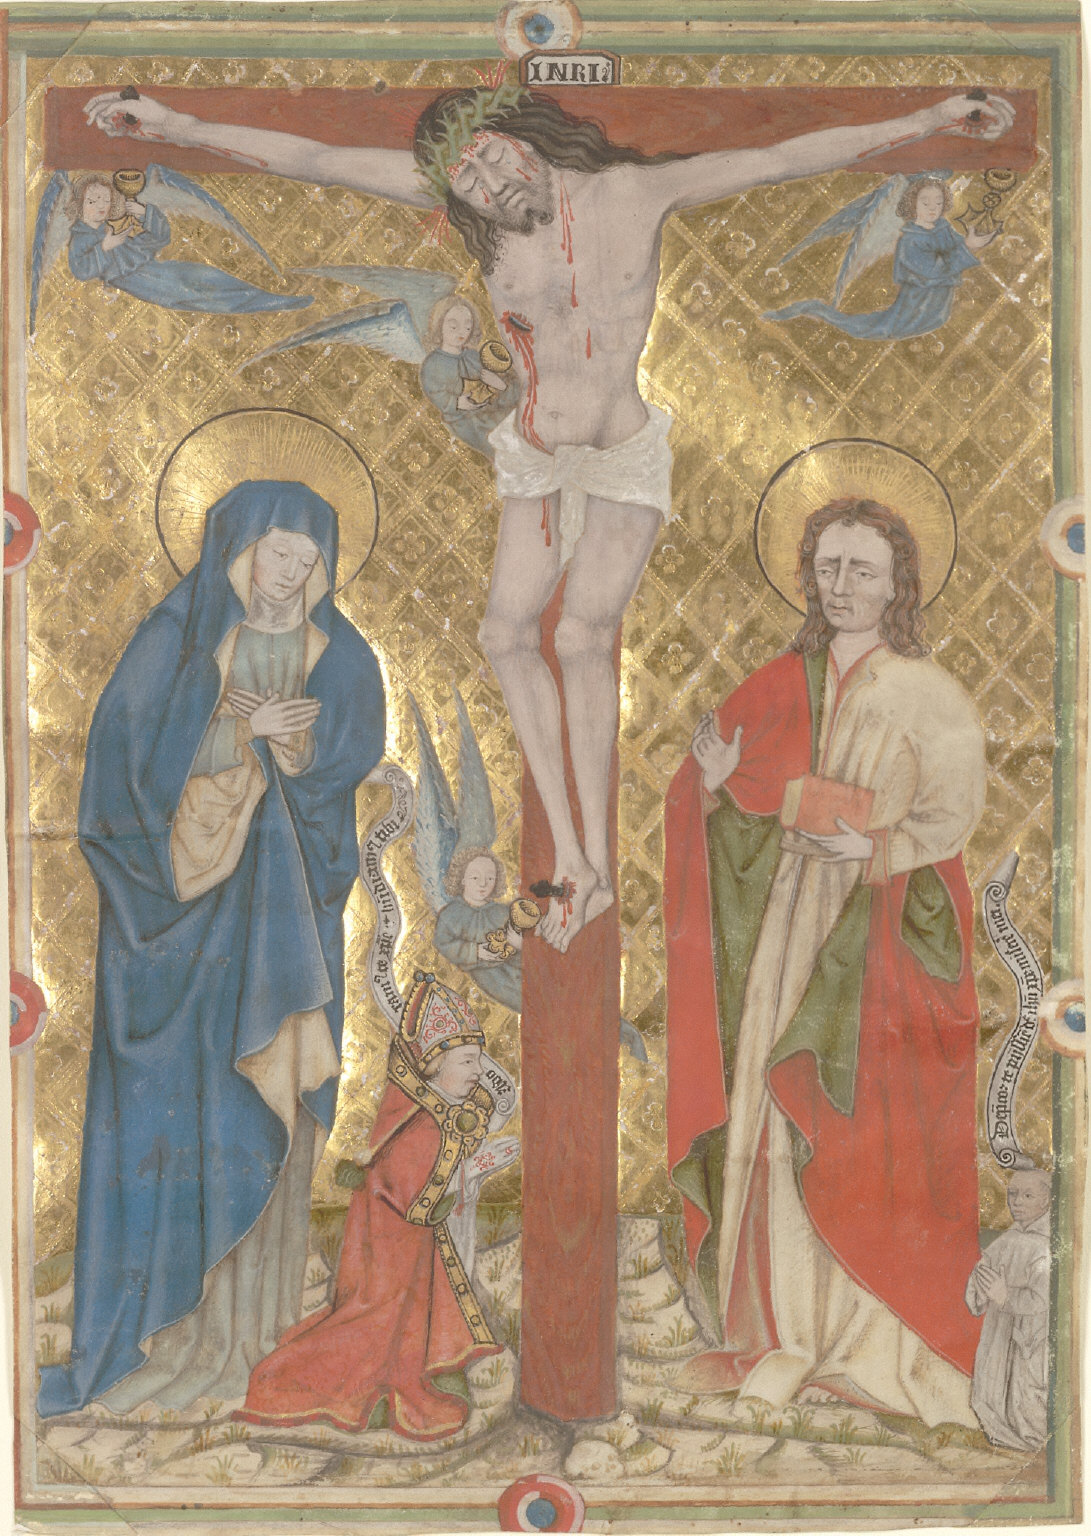 Single Leaf from a Missal: The Crucifixion